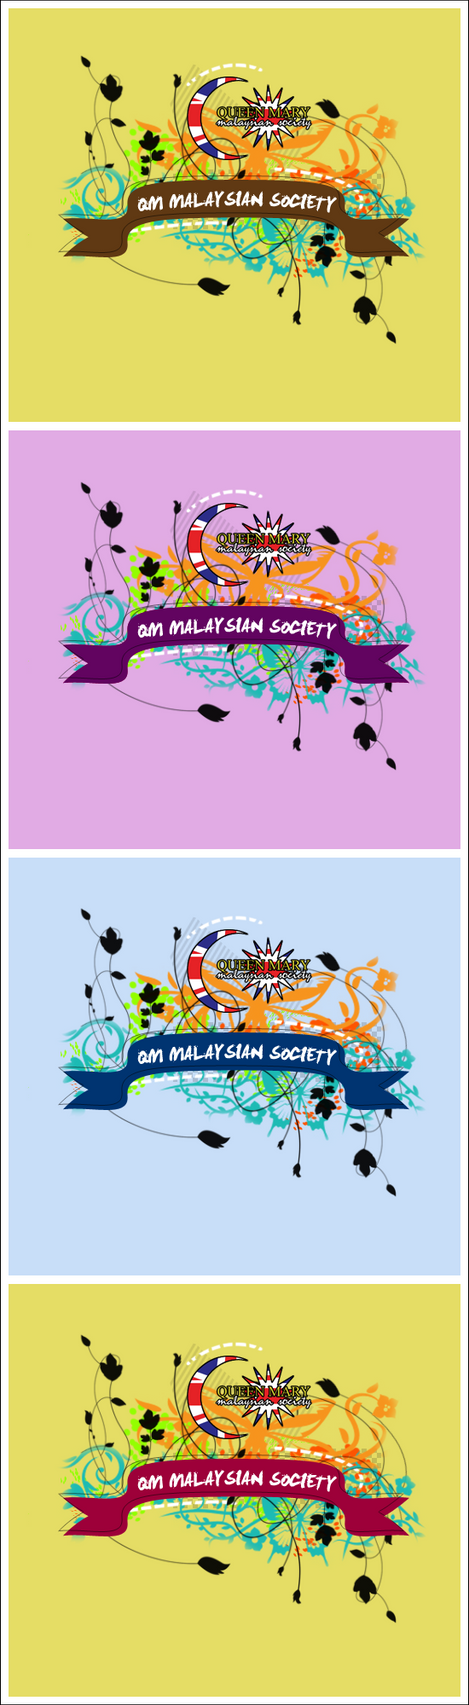 QMMSOC Newsletter Header I by Adila